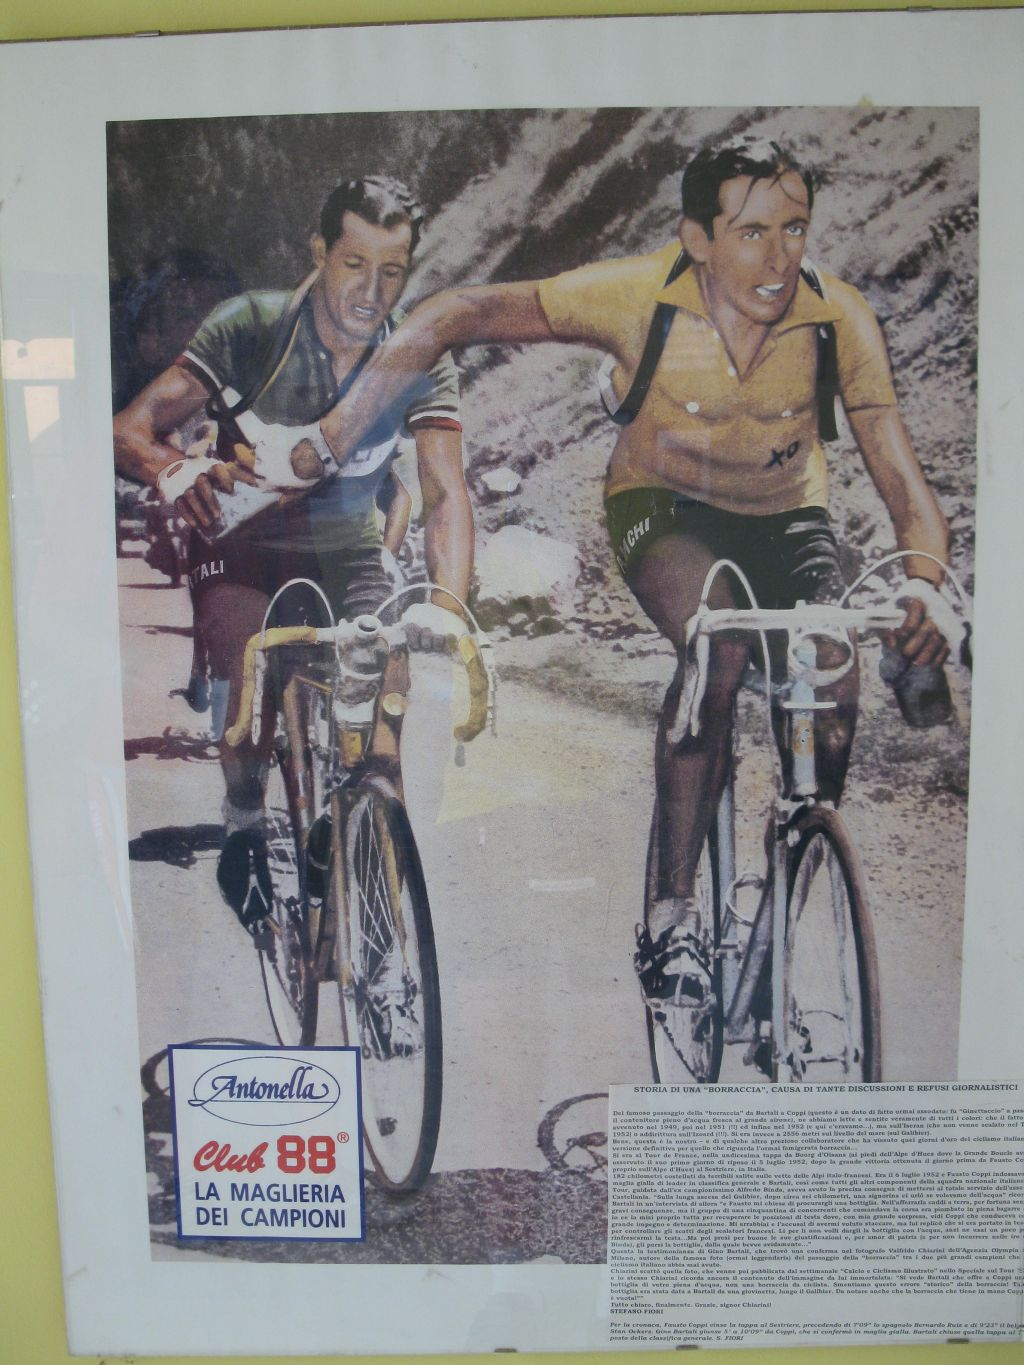 famous photo of_Coppi and Bartali